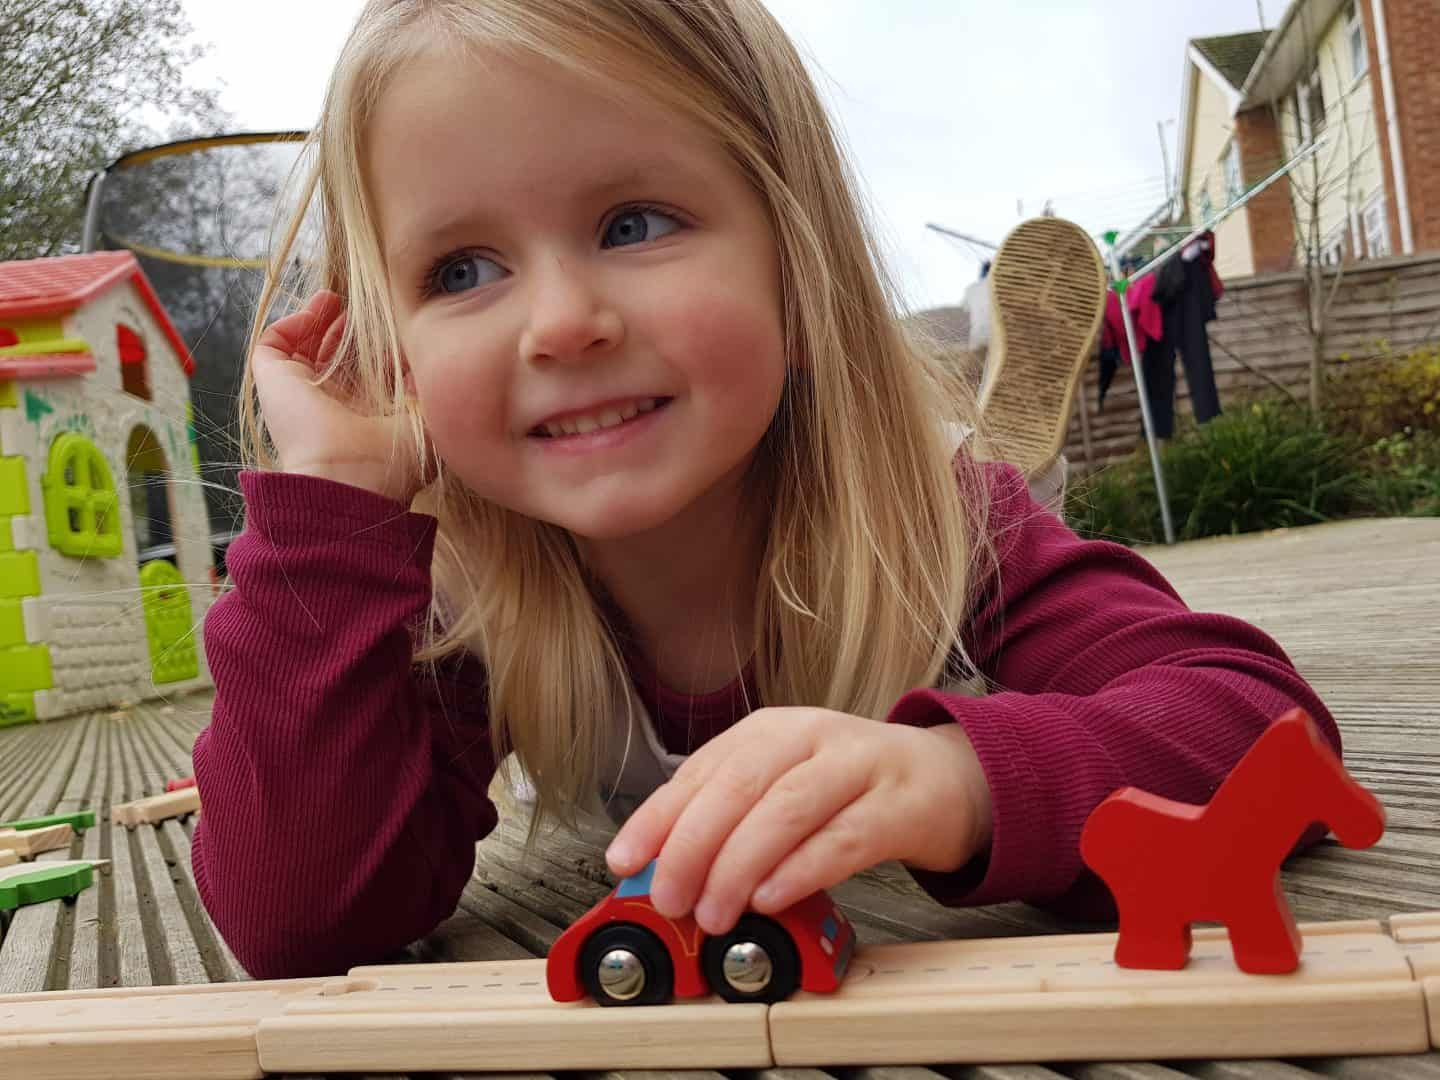 3 year old girl with toy car on a track